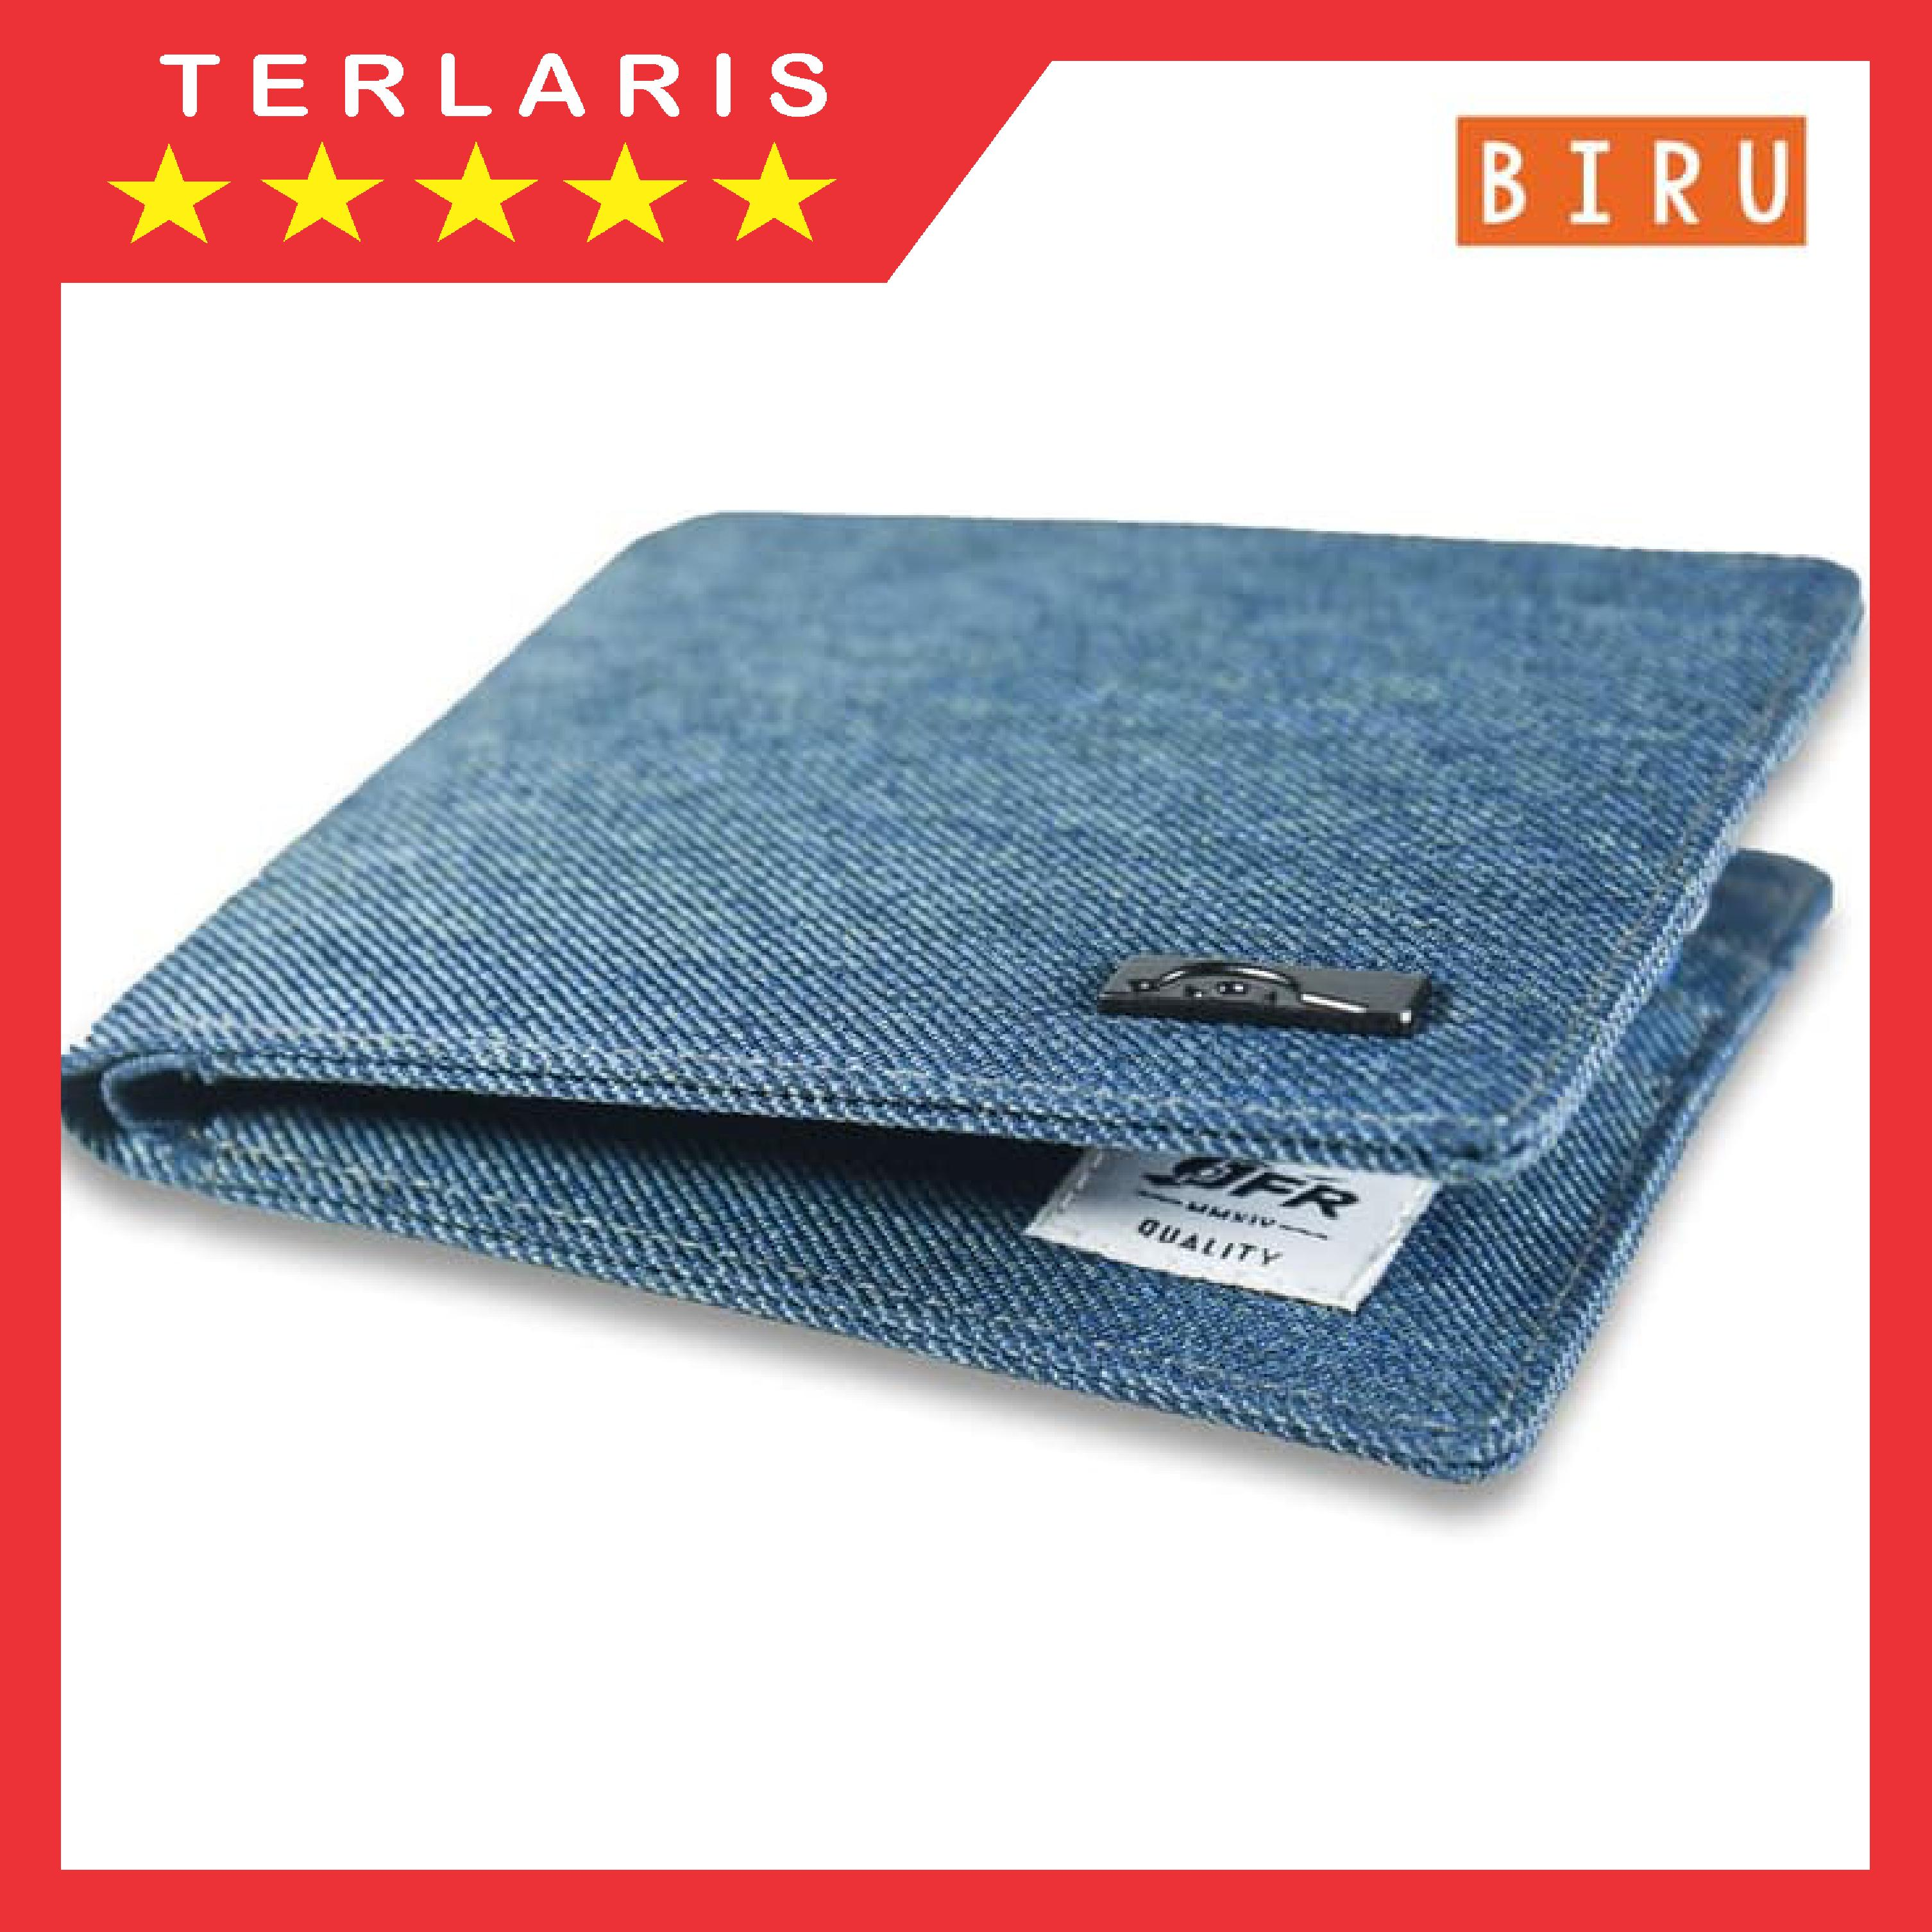 Fashion Dompet Pria Bahan Kulit Canvas Jp07 / Dompet Pria Kanvas / Dompet Pria Elegant / Dompet Pria Simpel By Red Trade.